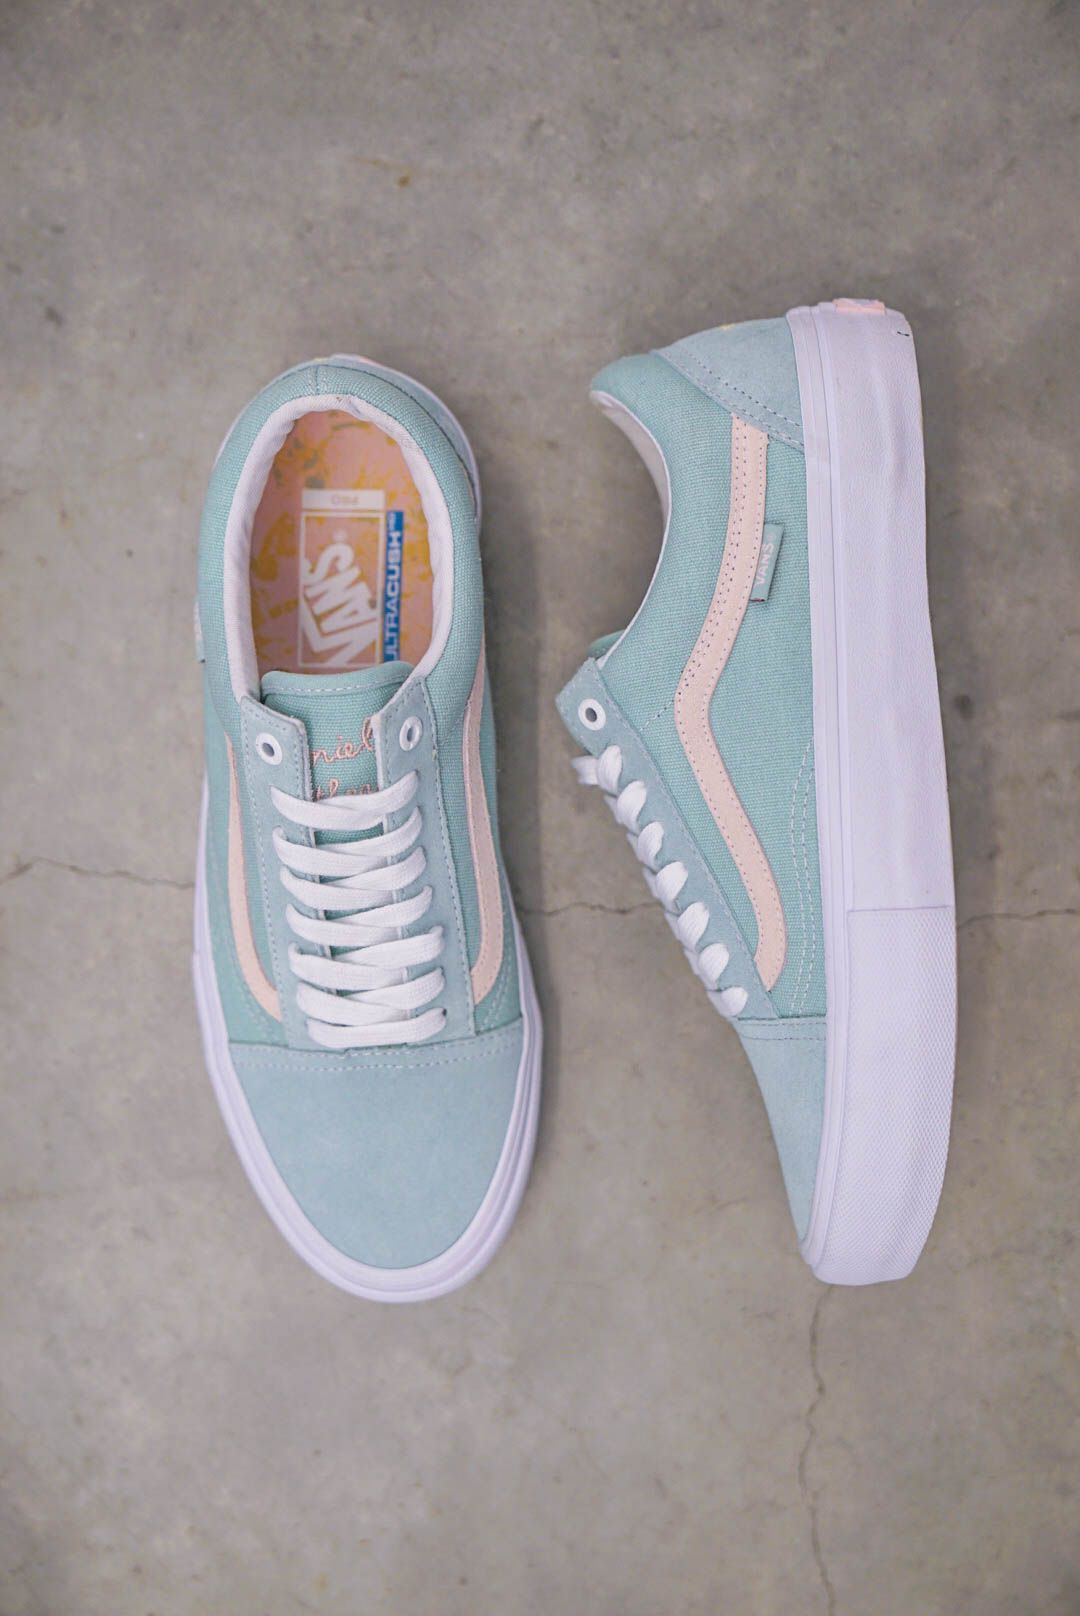 Vans Old Skool Pro Dan Lu Harbor Grey Pearl Skate Shoes Em 2019